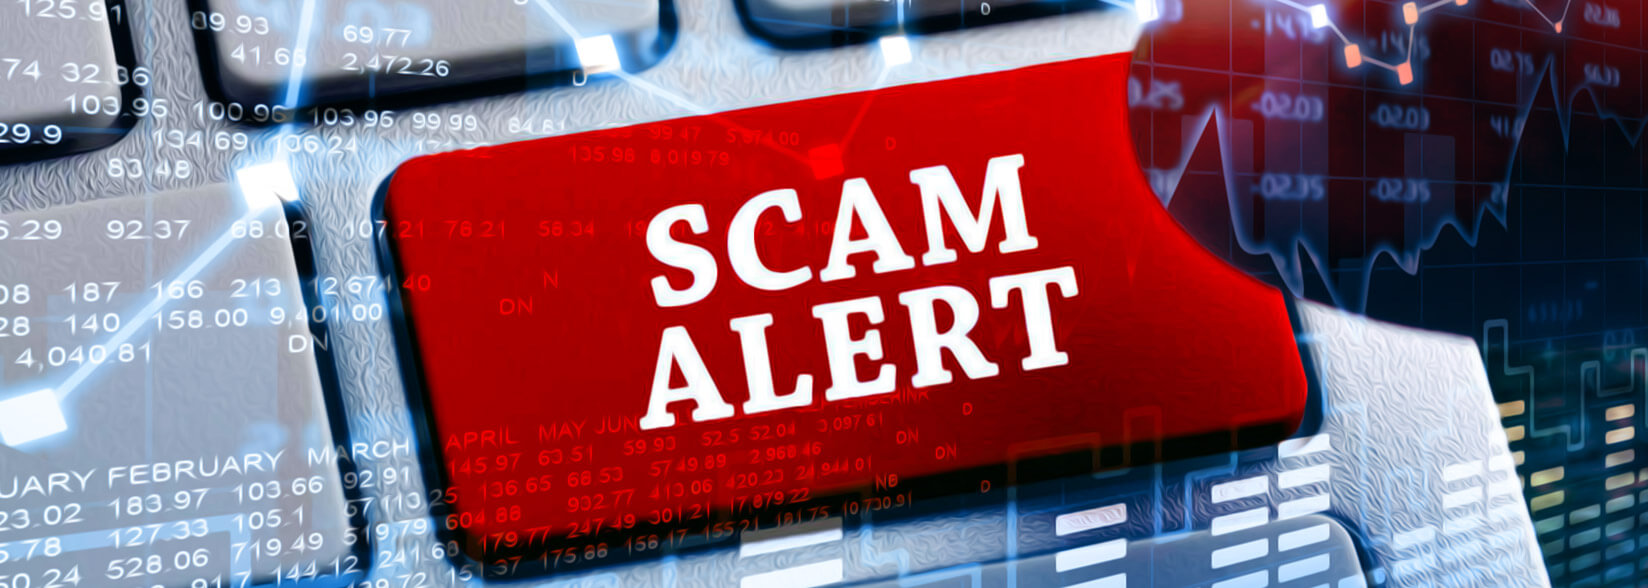 Avoid-Personal-Loan-Scams